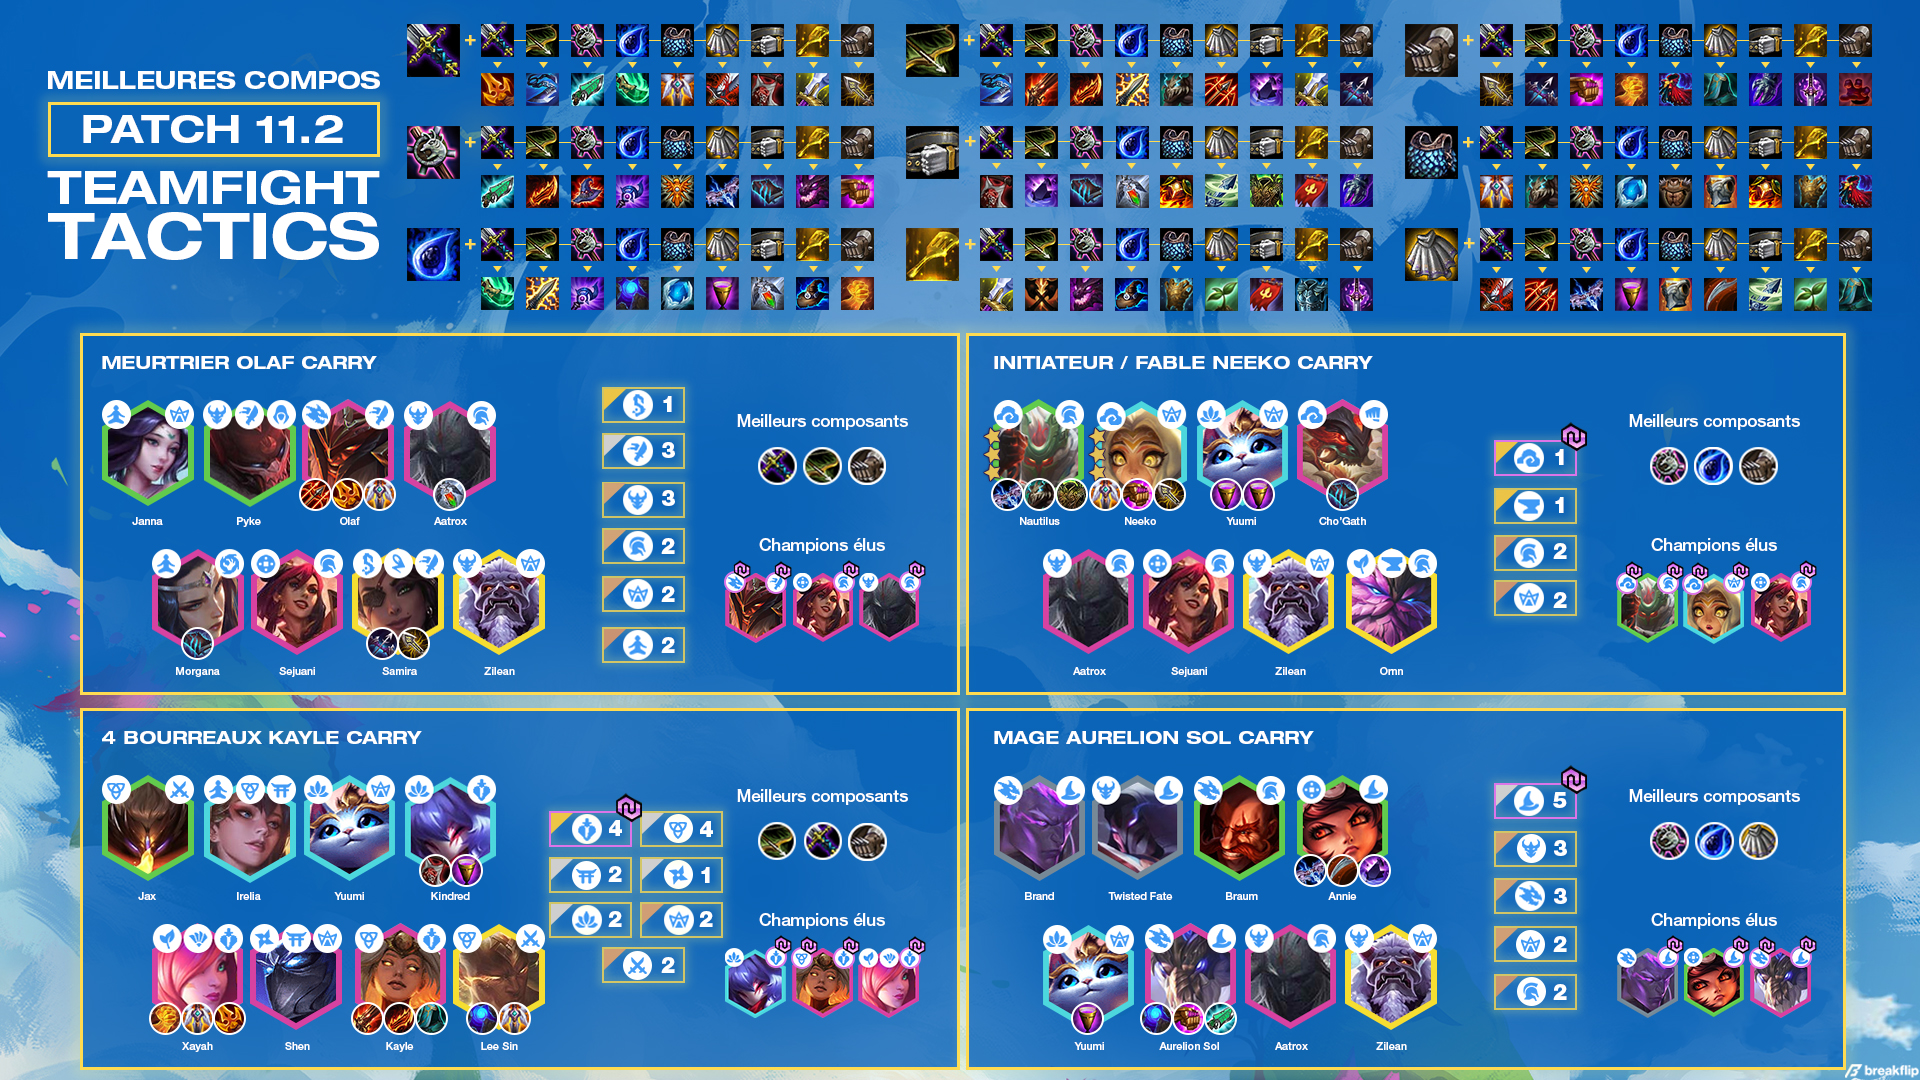 TFT-Cheat-Sheet-Compos-Patch-11.2